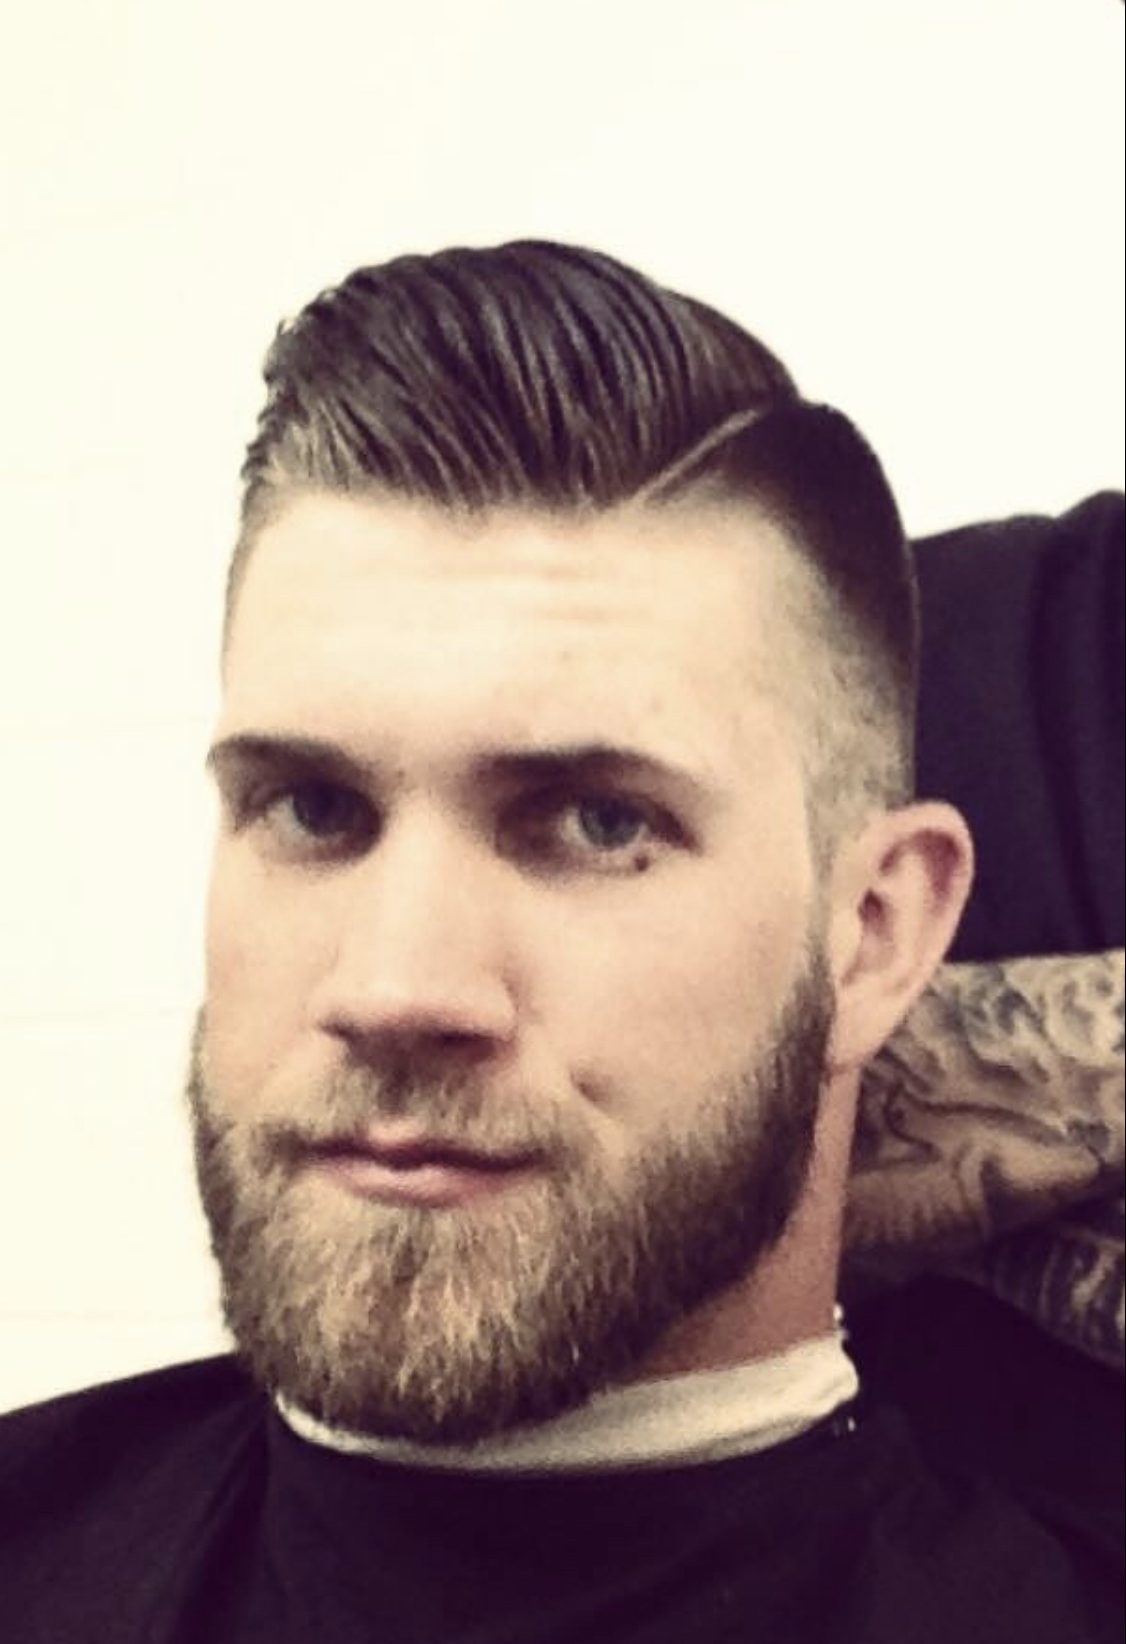 bryce harper miami haircut